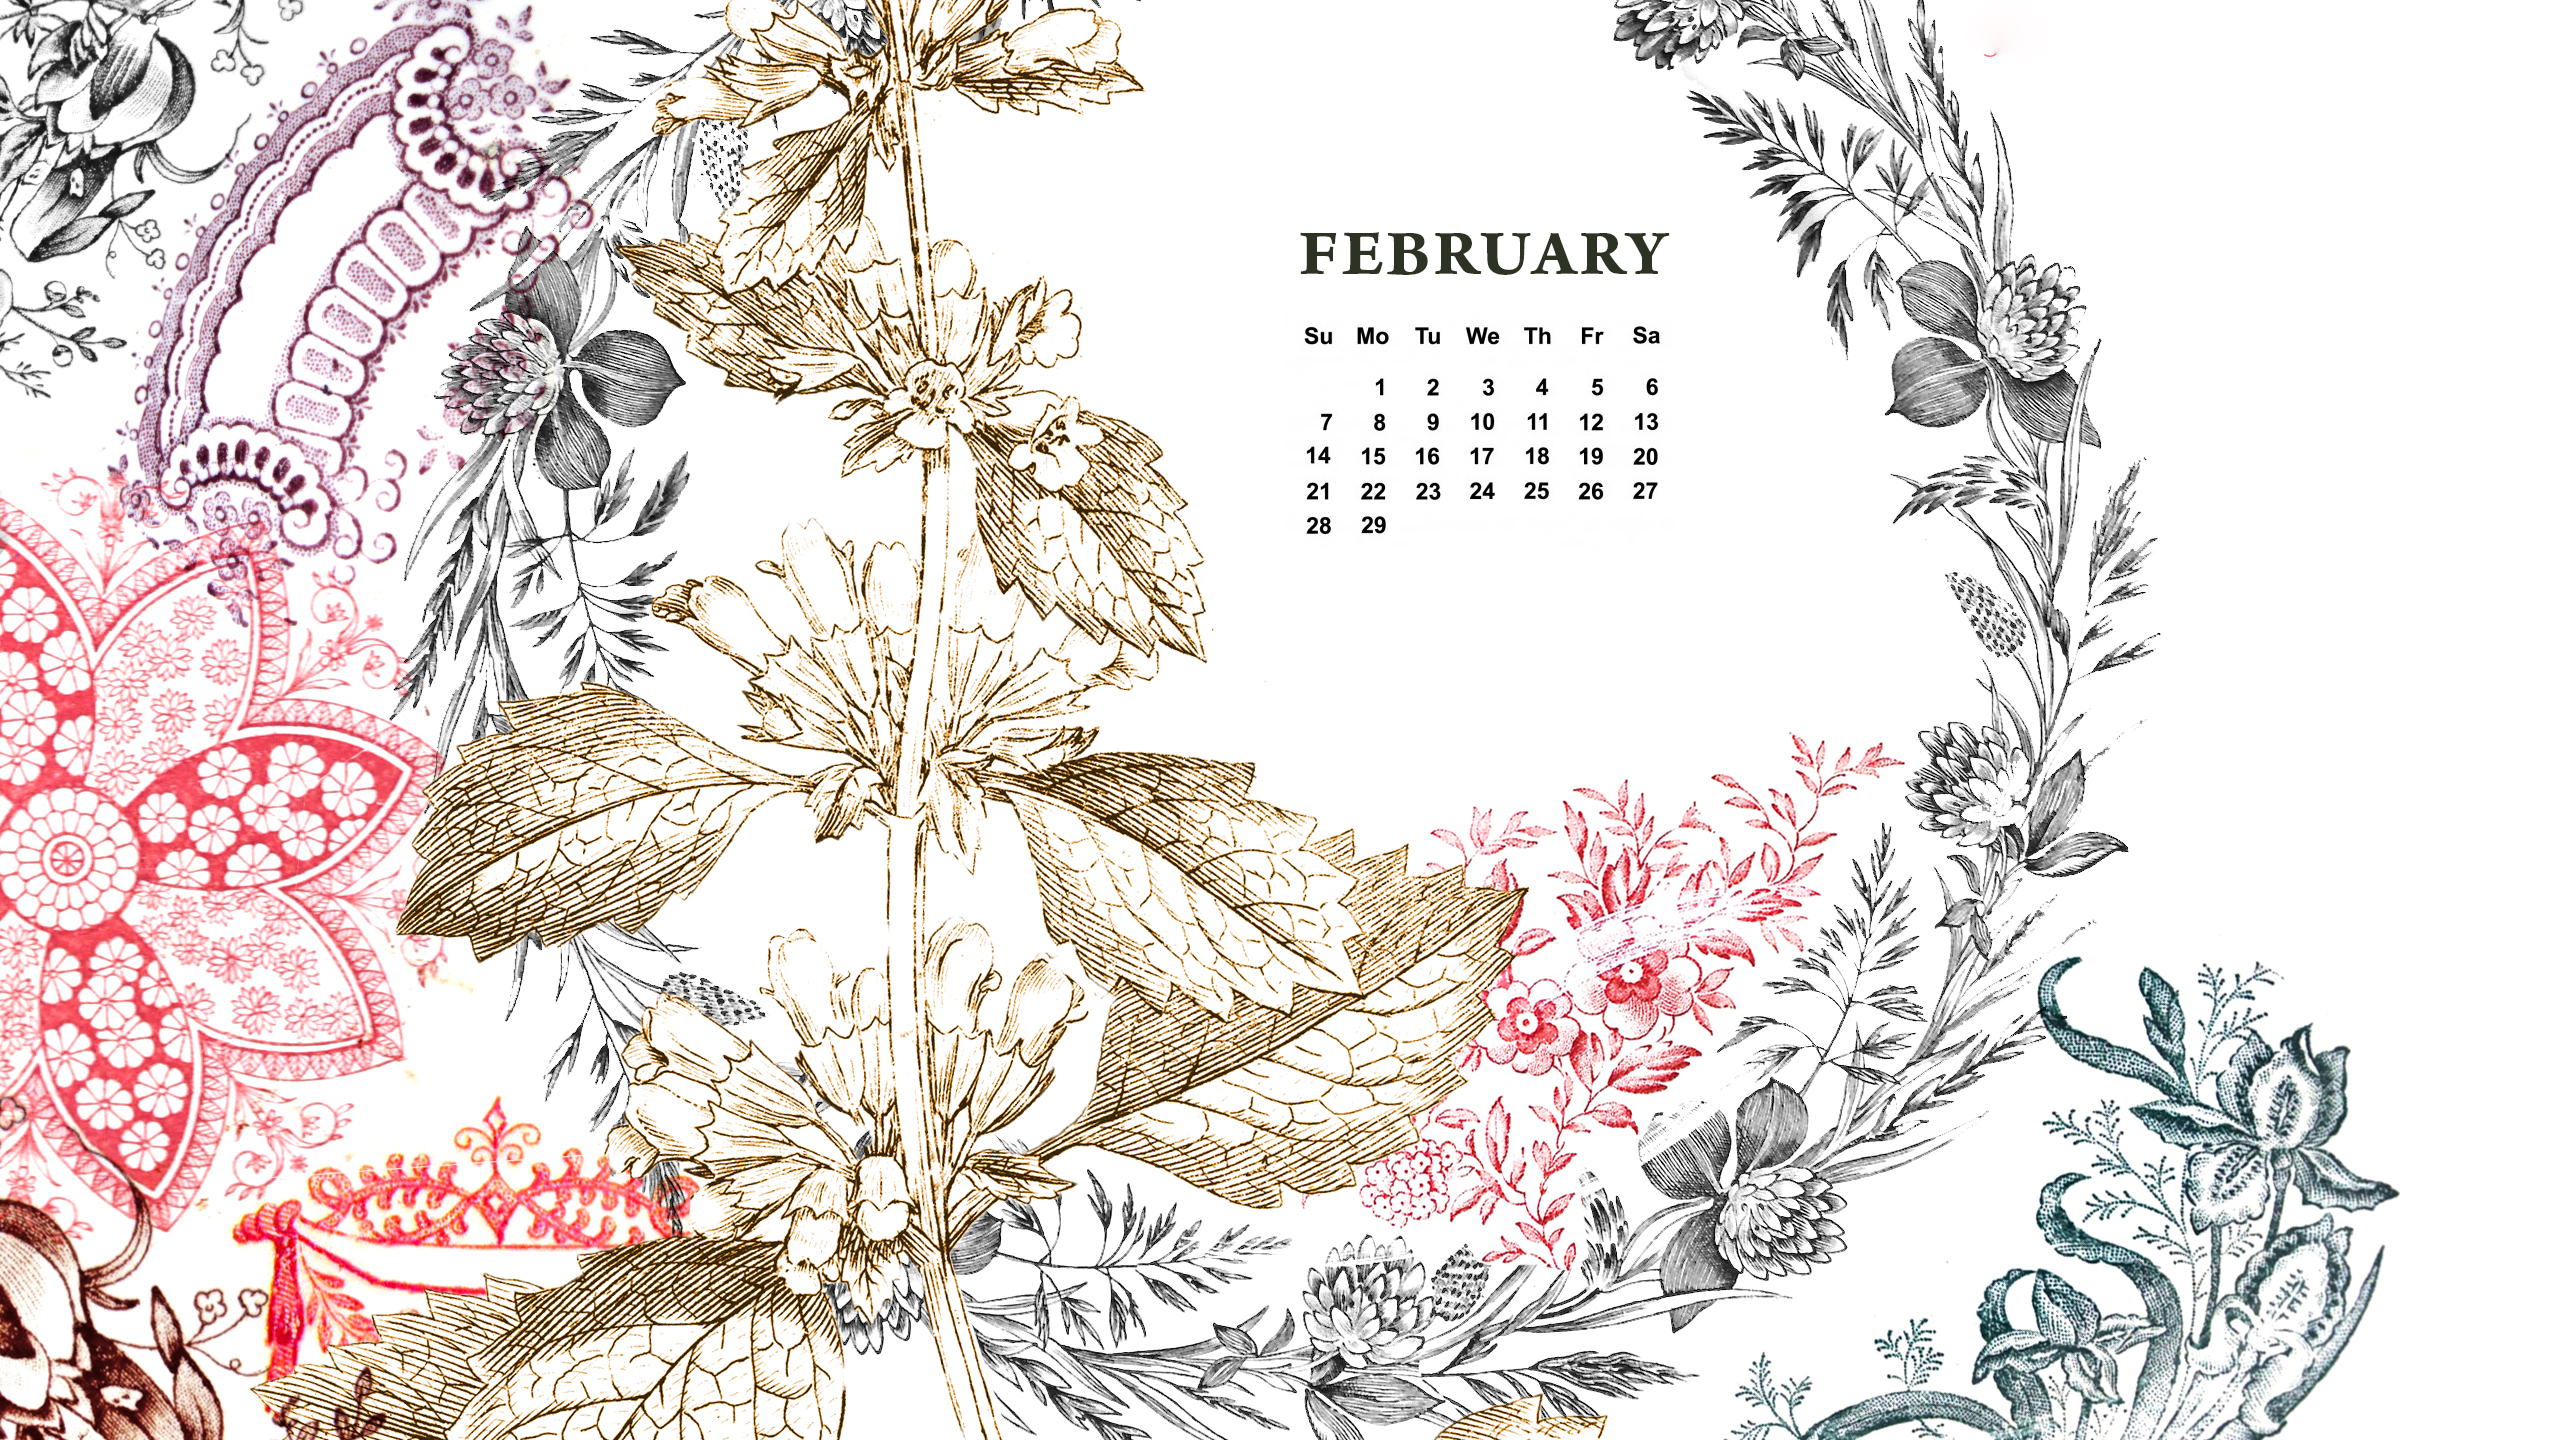 Wallpaperwiki February Desktop Wallpapers Hd Pic Wpb005360